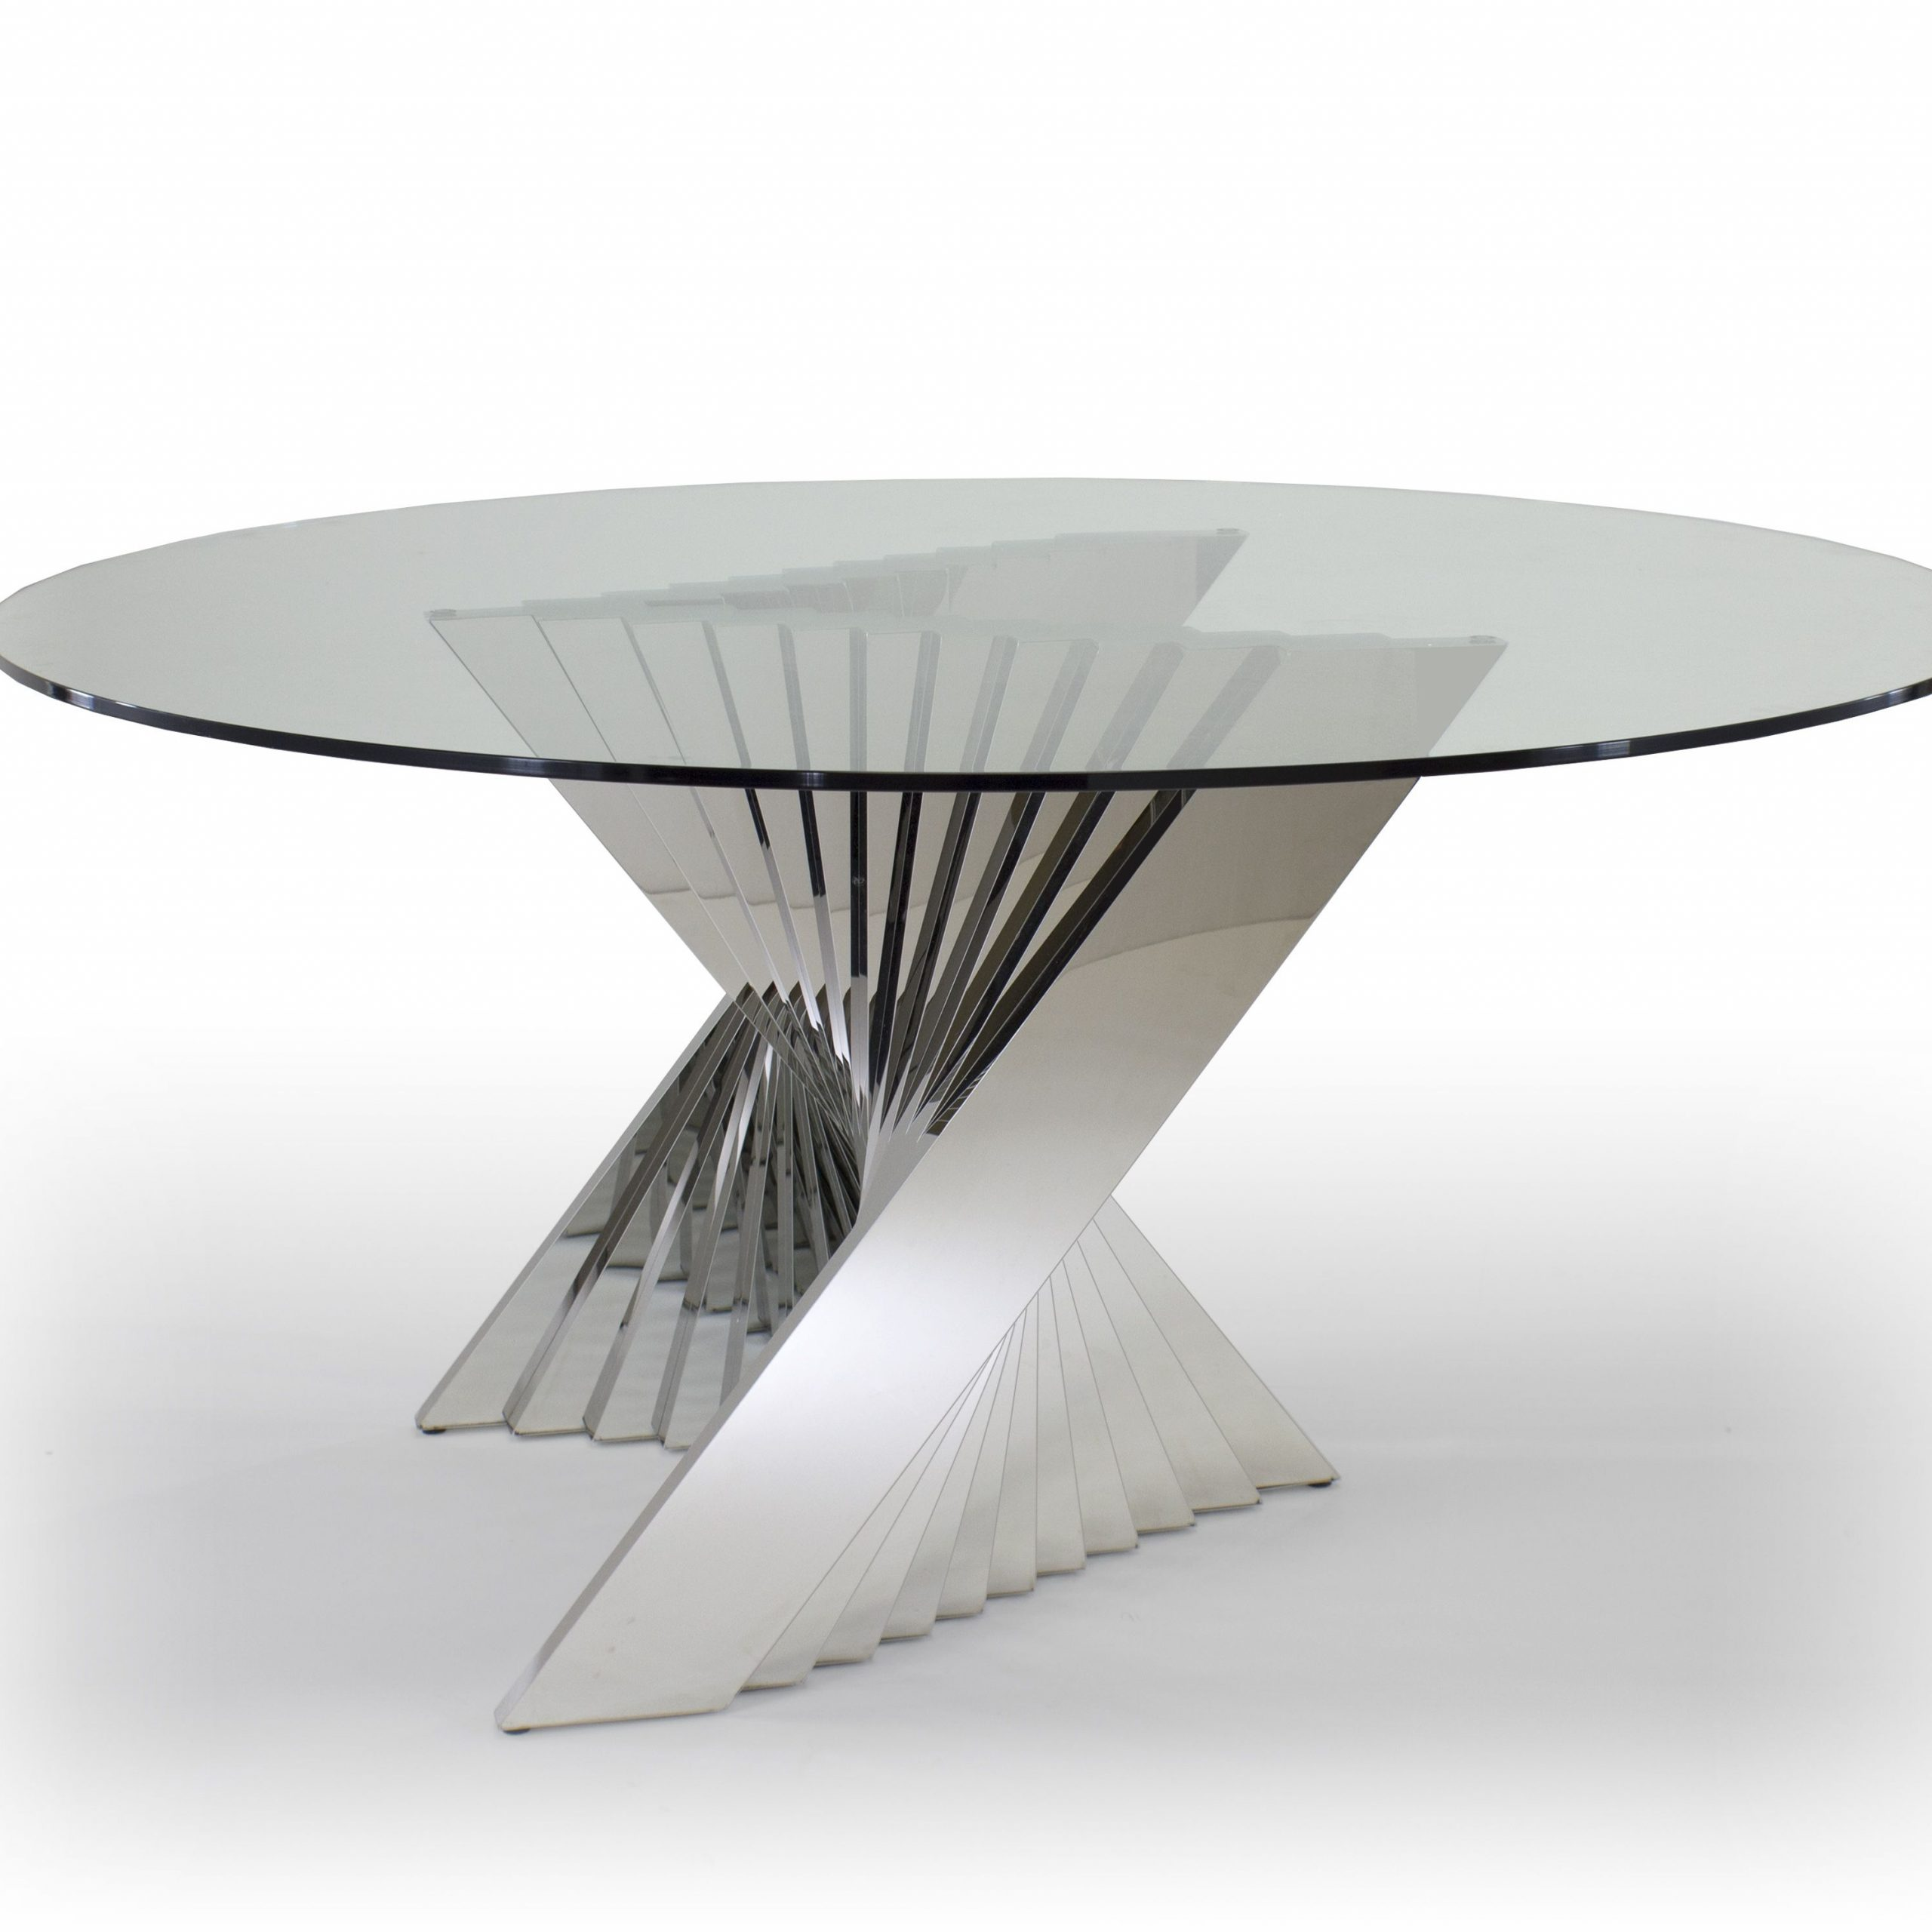 Latest Long Dining Tables With Polished Black Stainless Steel Base Pertaining To Ace Dining Table – Round Glass Top And Metal Base Dining (View 2 of 30)